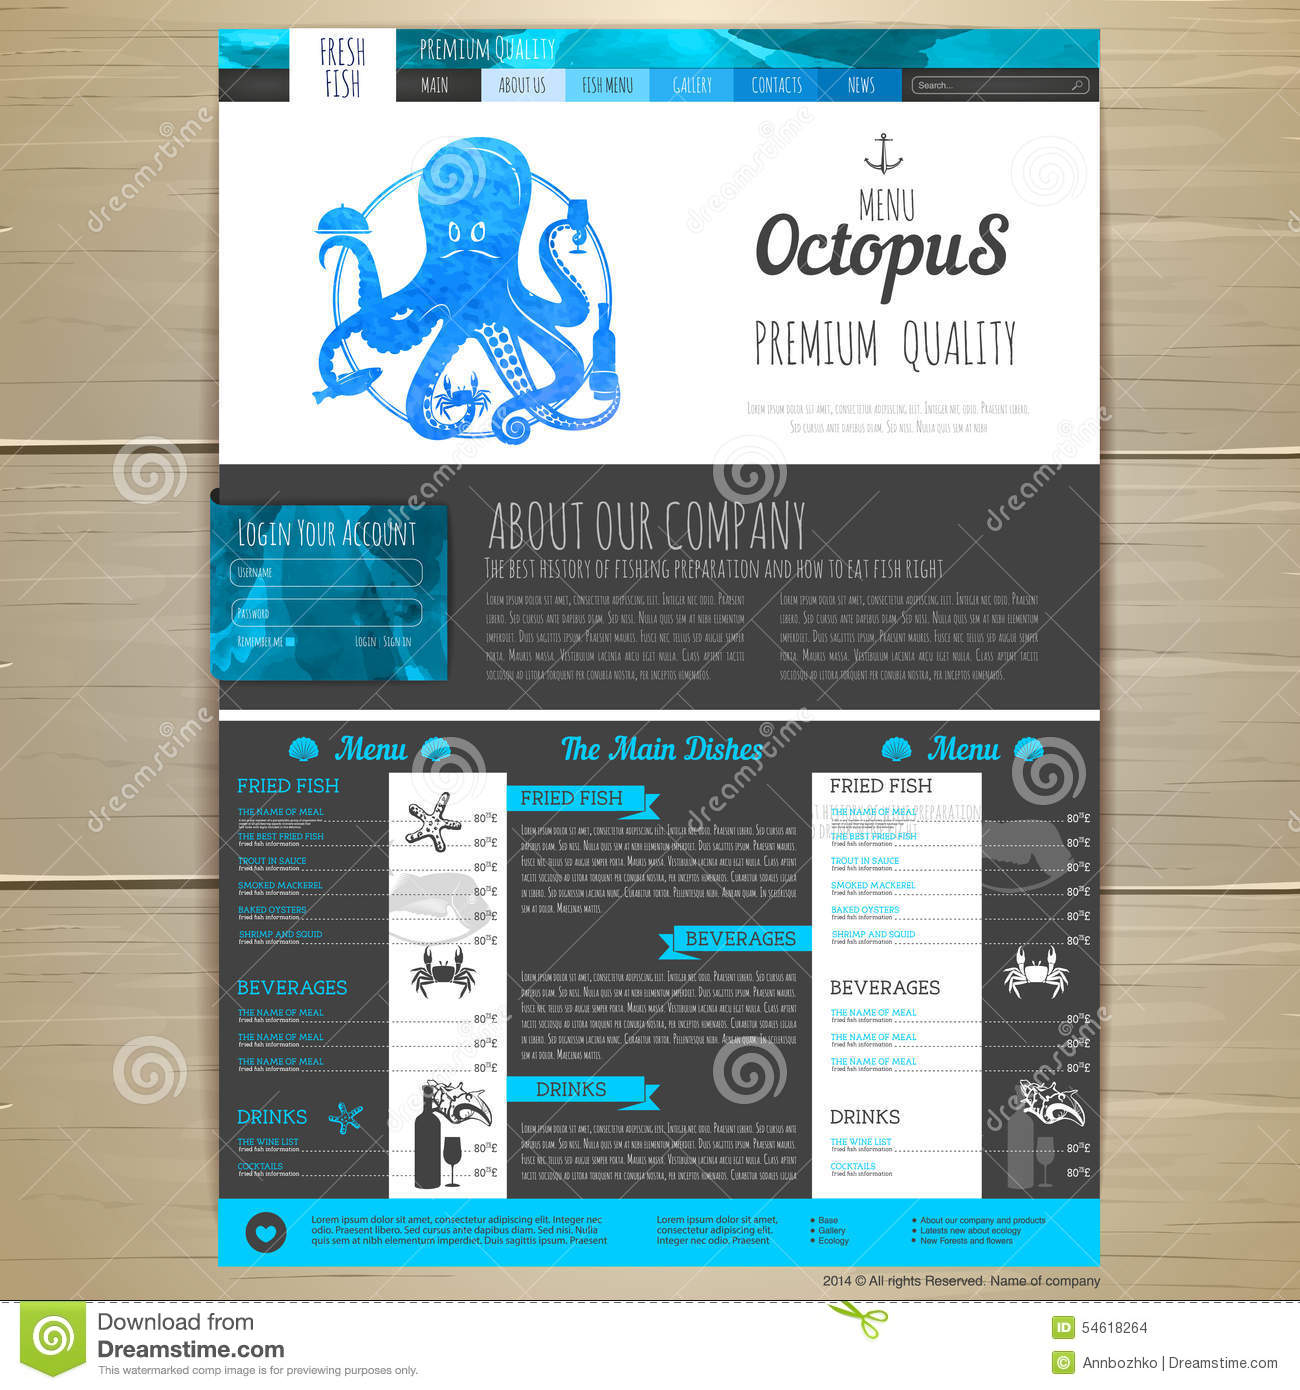 Watercolor seafood concept design corporate identity